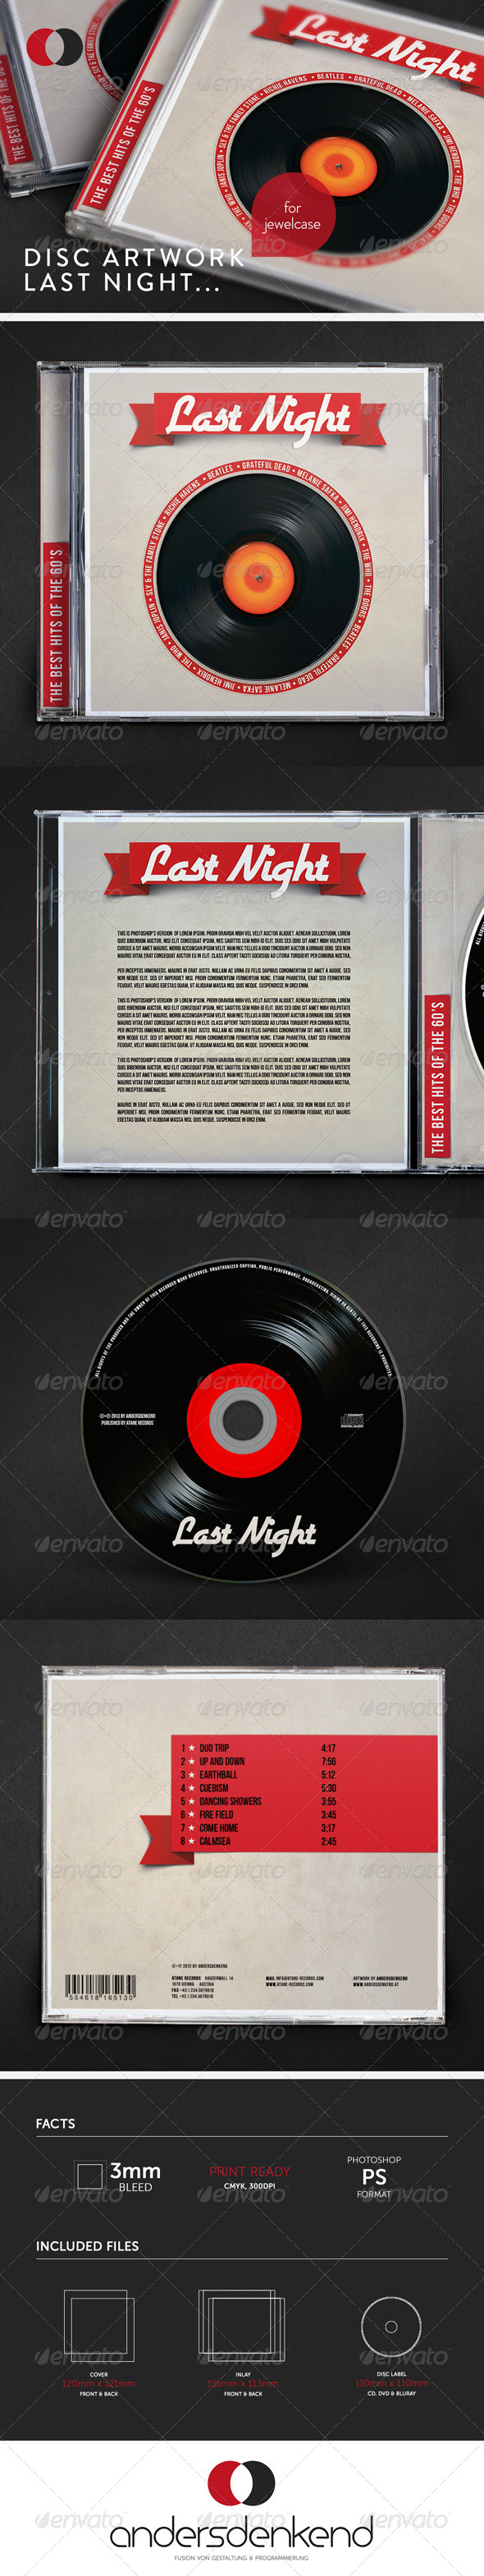 GraphicRiver Disc Artwork Last Night.. 6038694